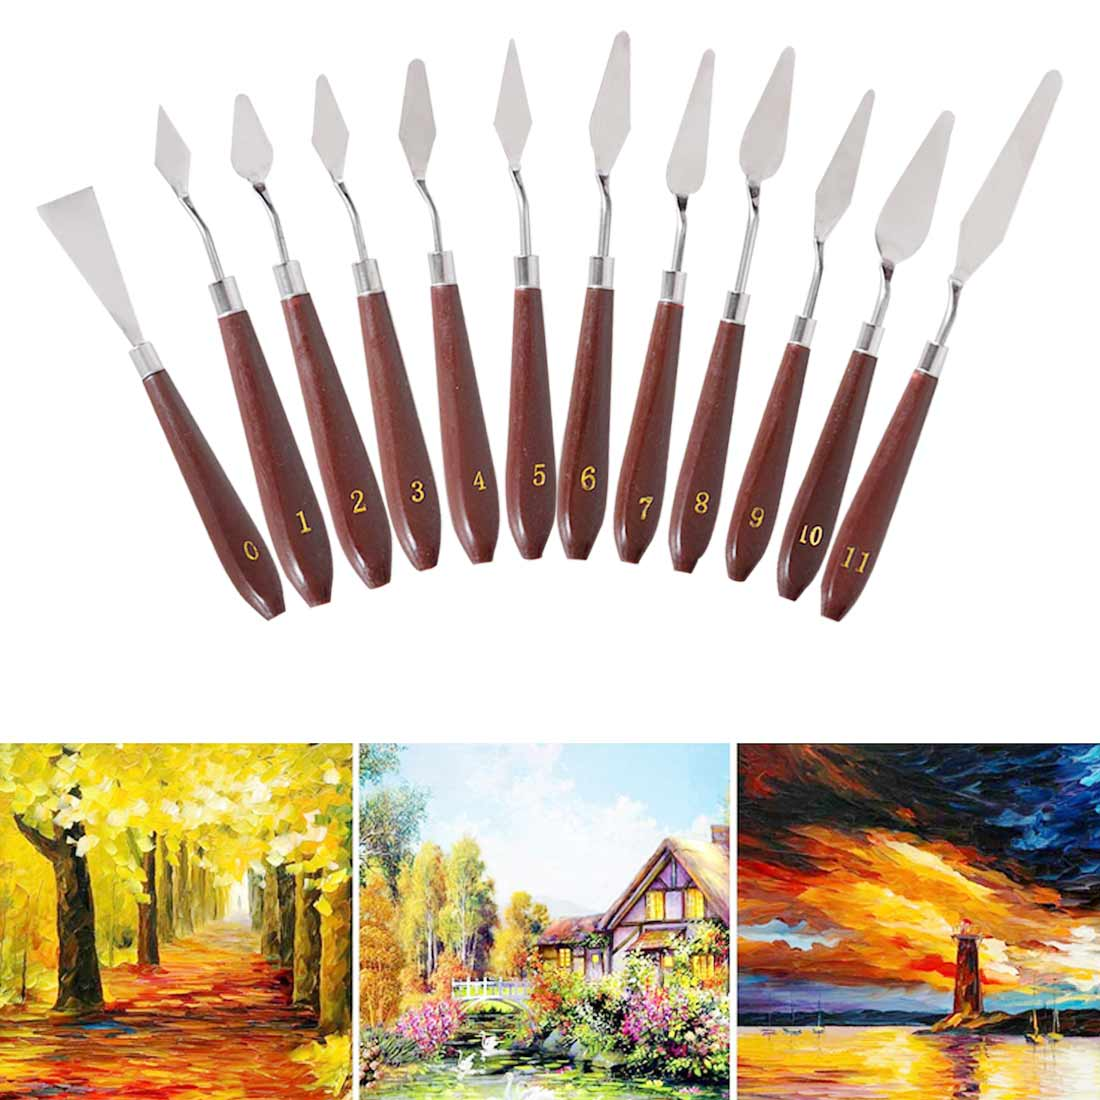 Palette Draw Spatula Drawer Watercolor Knife Pigment Student Oil Mix Scrape Scraper Texture Painter Paint Tool Artist Art